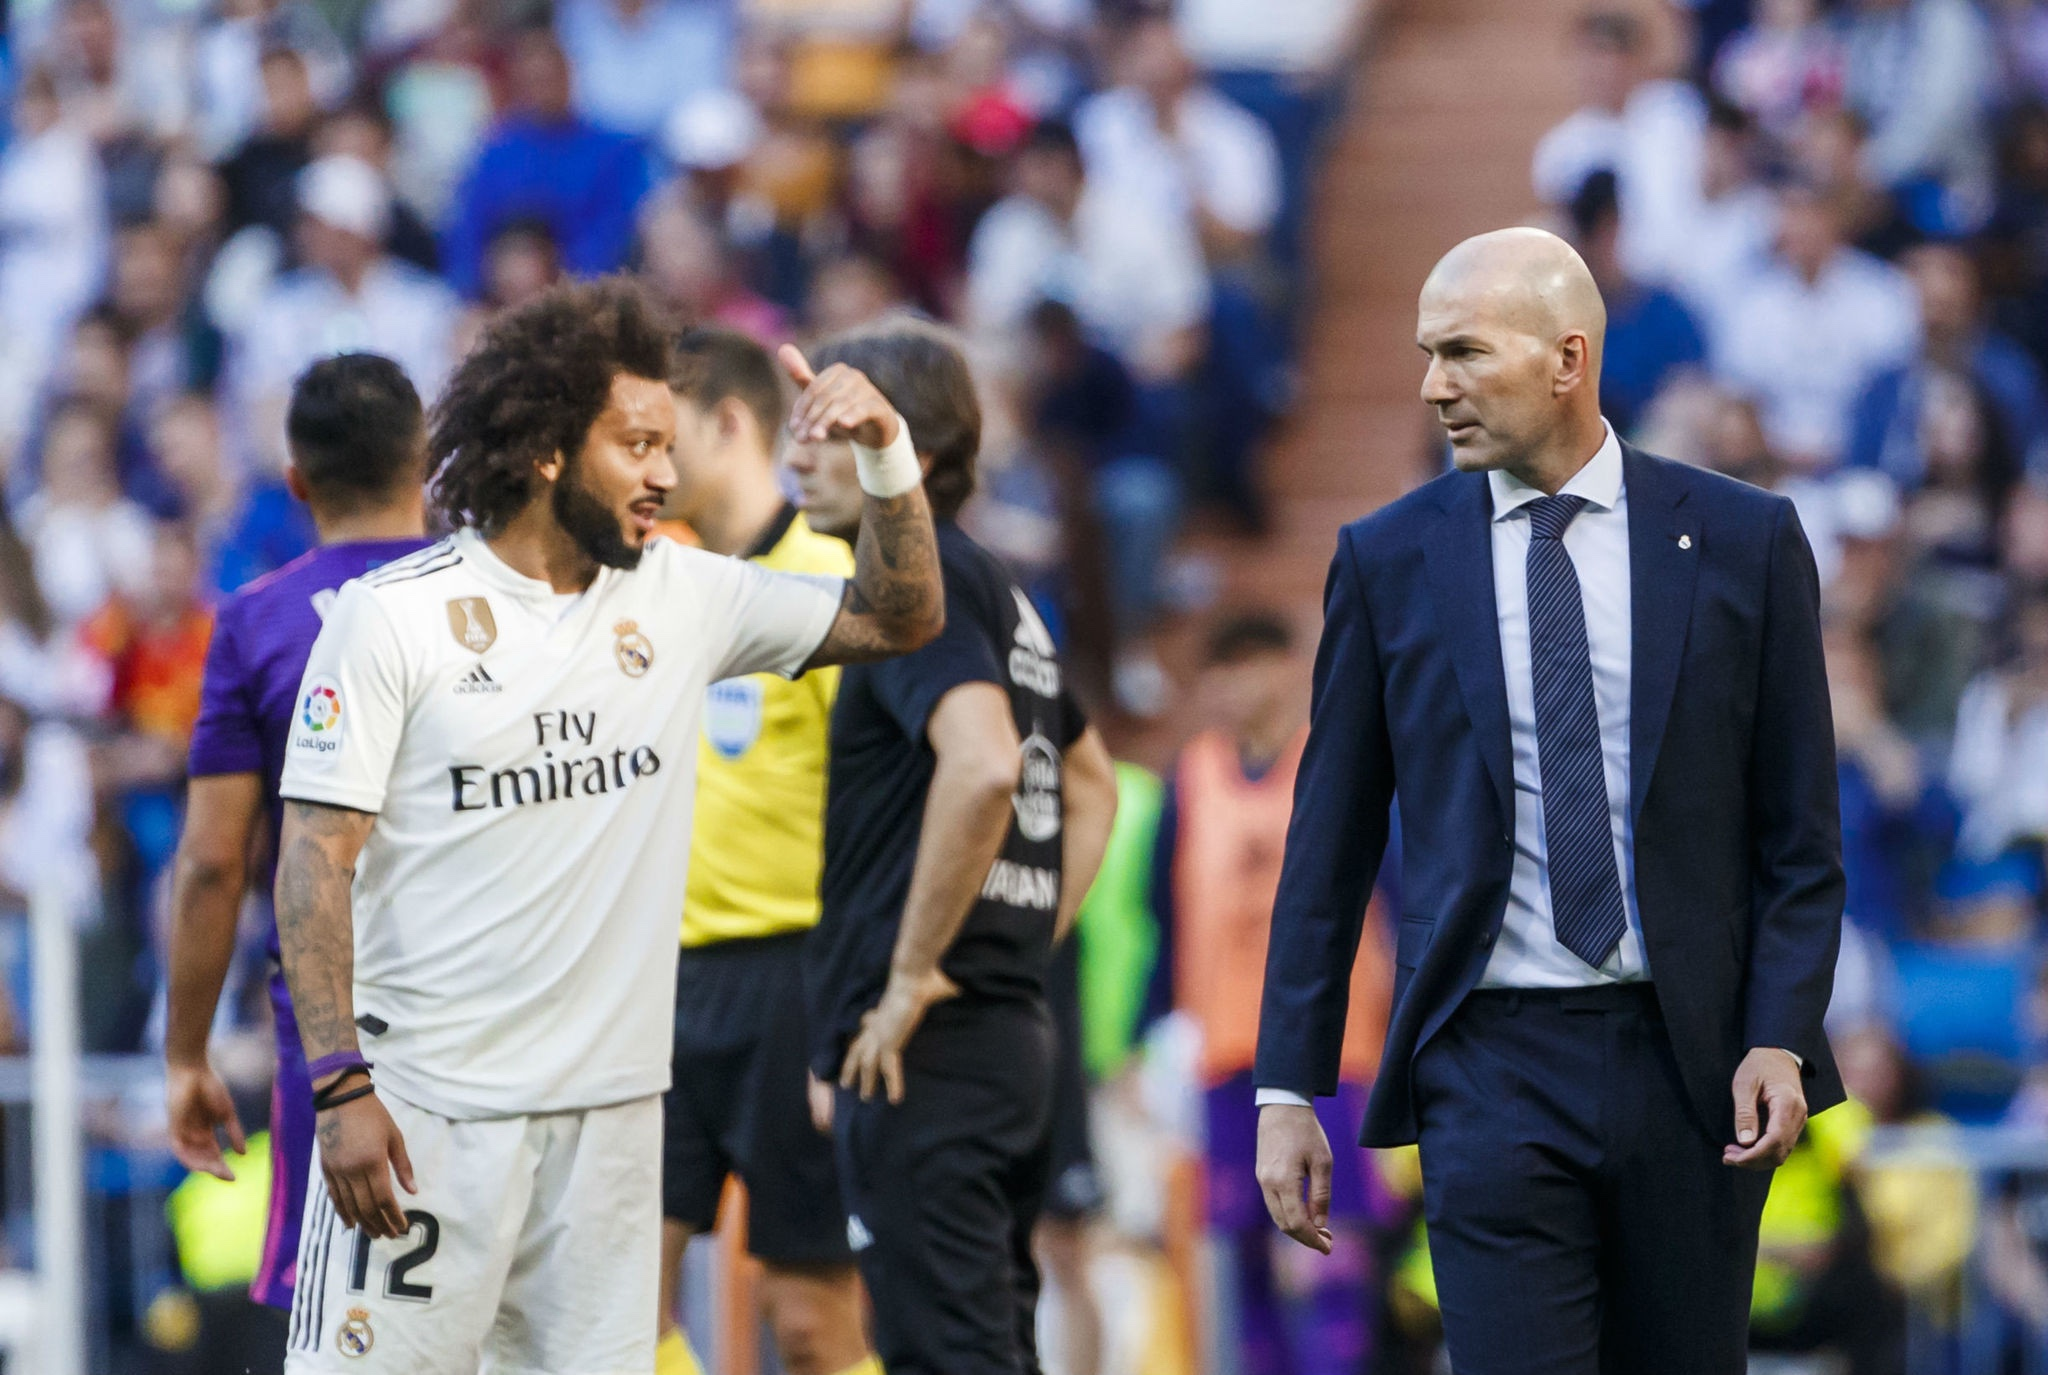 Marcelo is axed from the Real Madrid squad 'after a bust-up with boss Zinedine Zidane